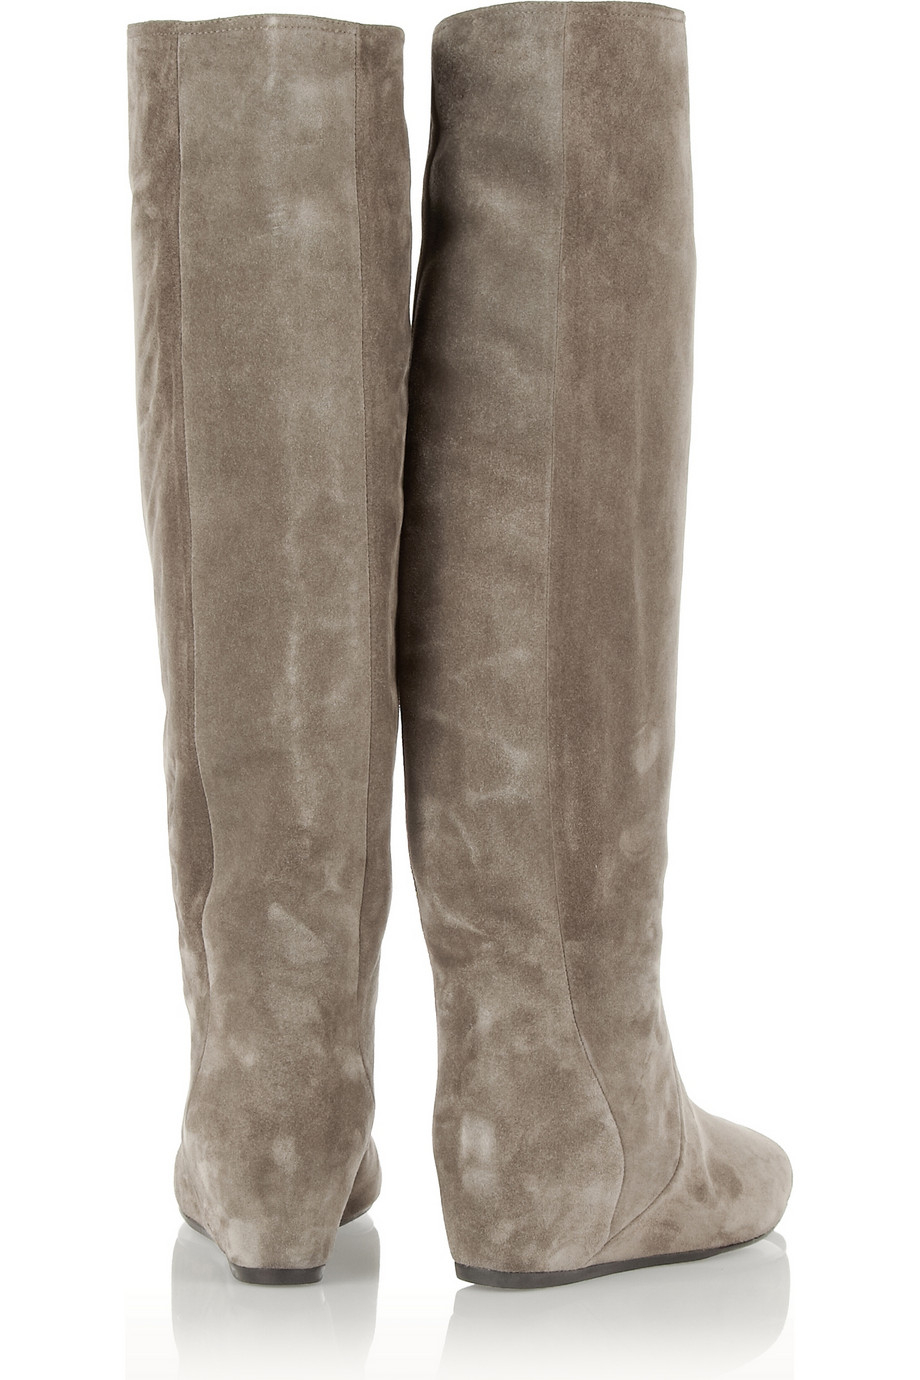 34449e78de14 Lyst - Lanvin Suede Wedge Knee Boots in Gray